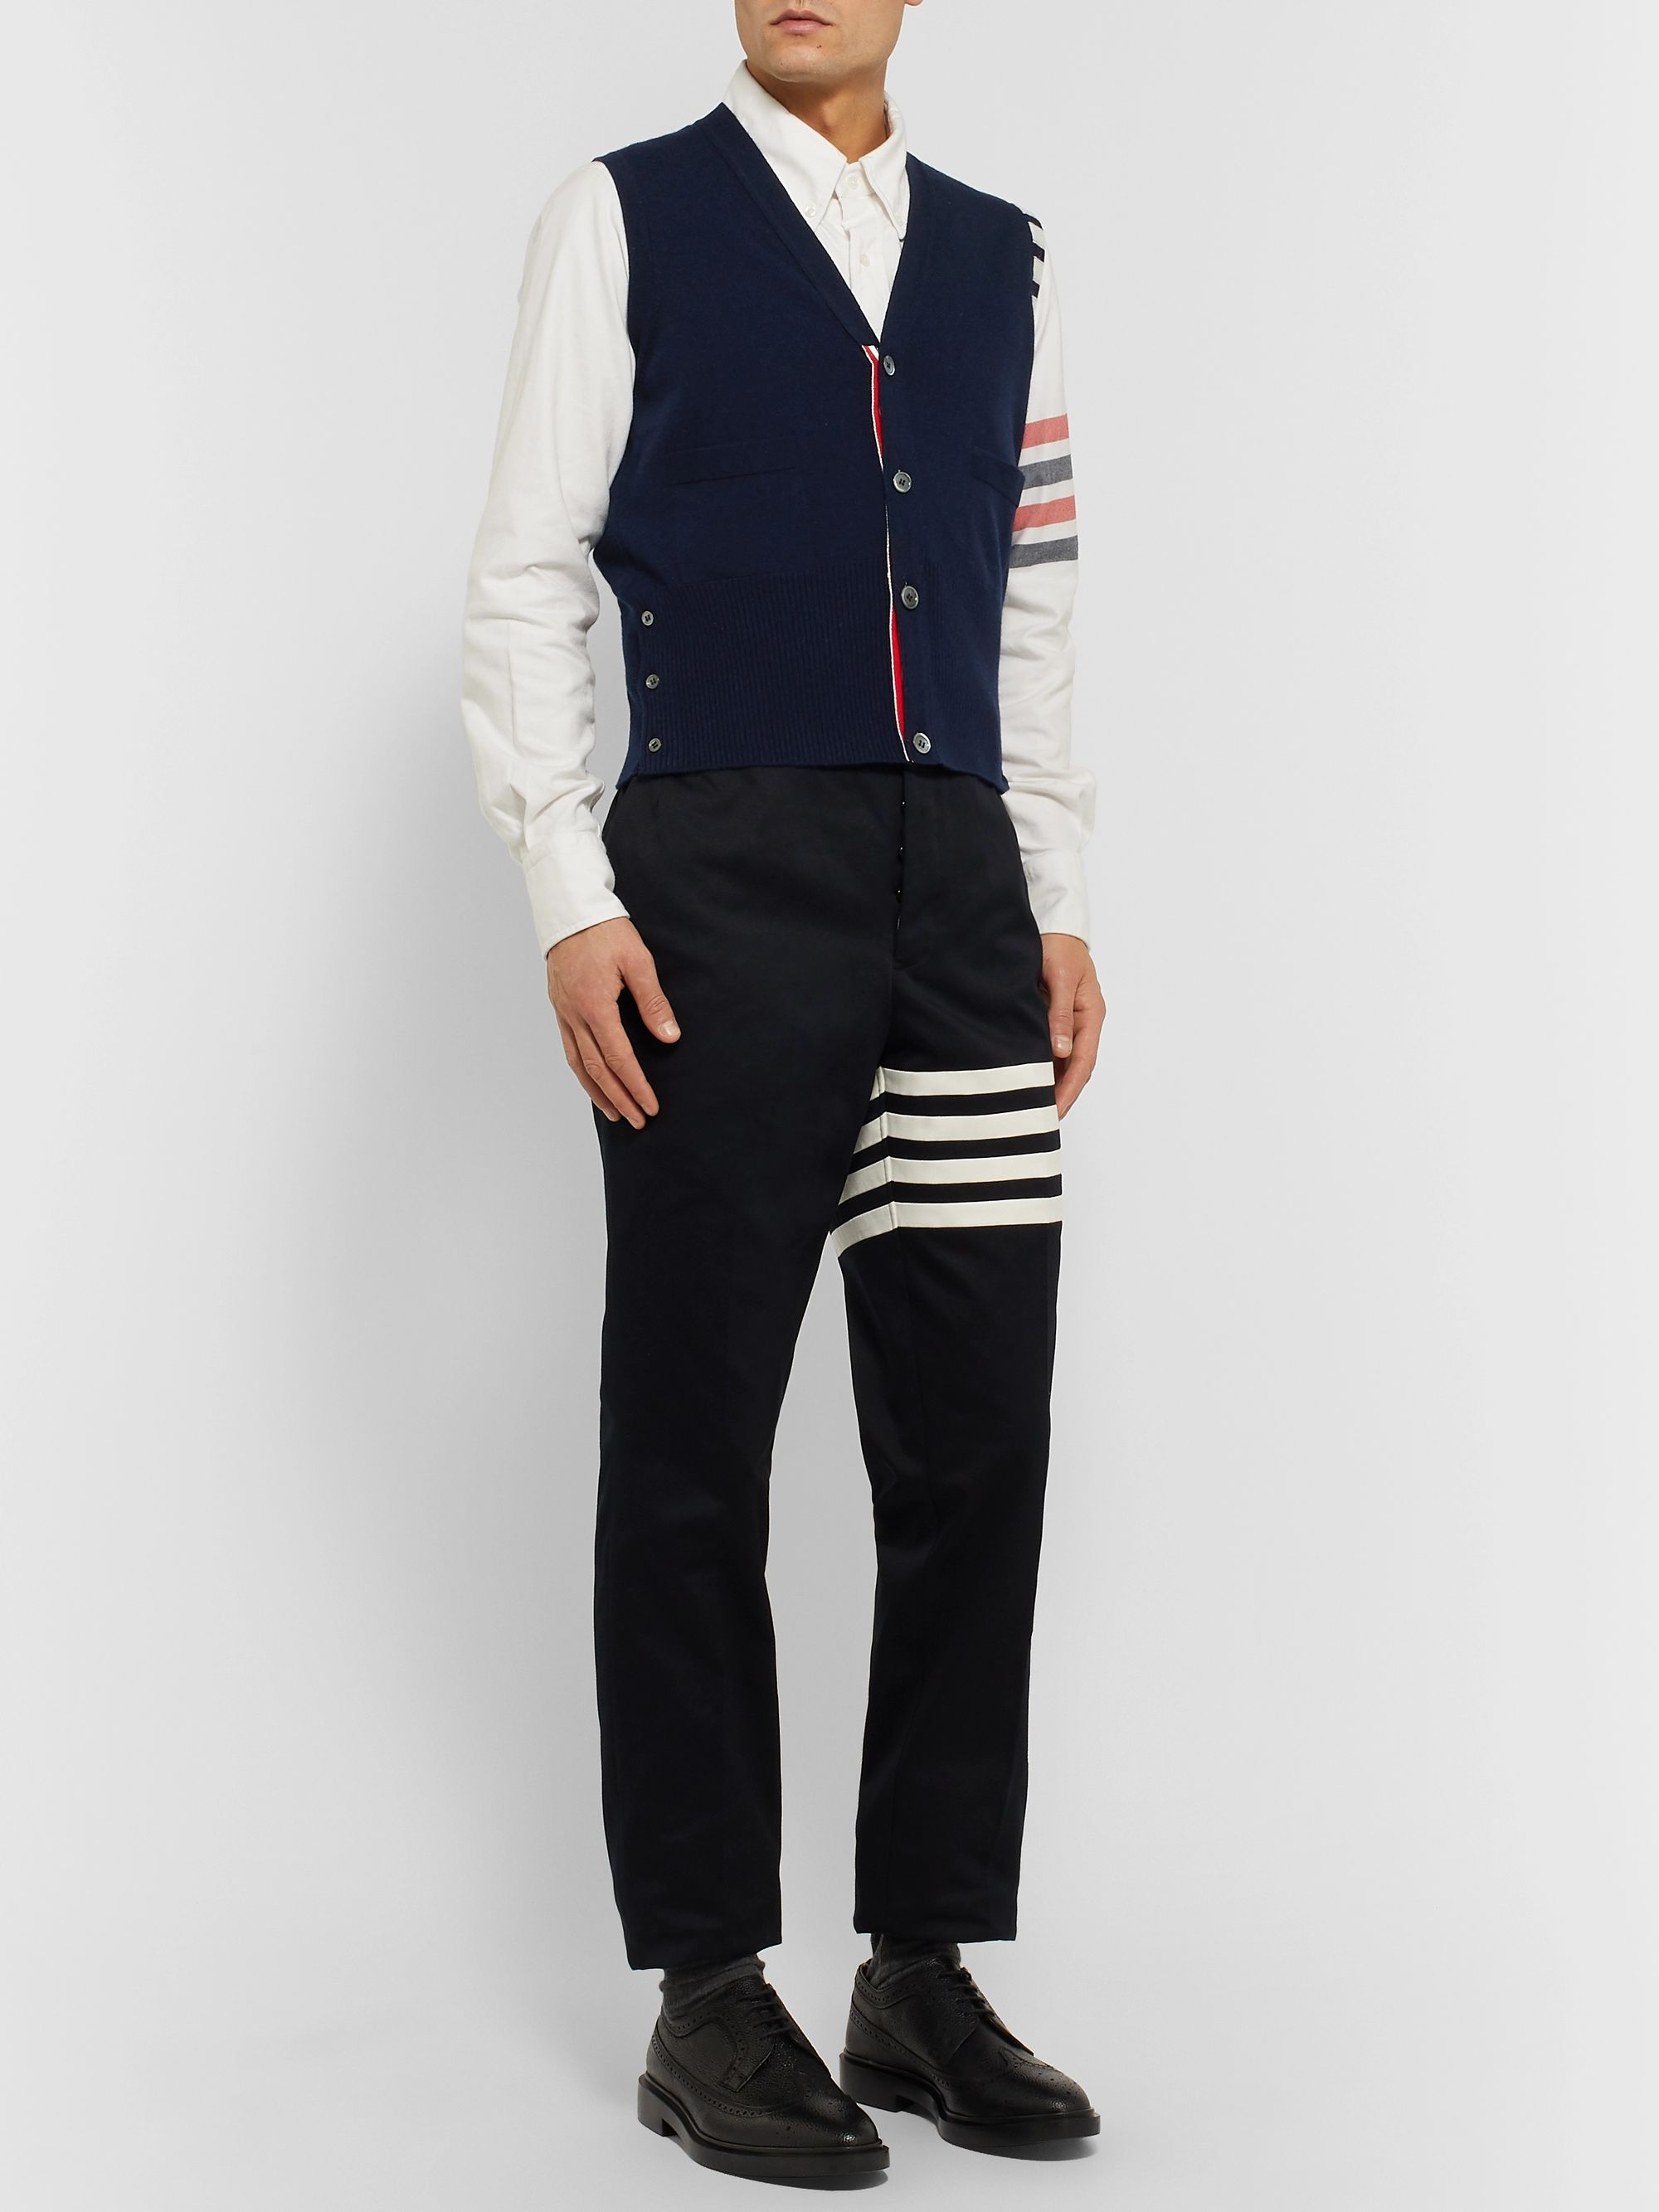 Thom Browne Striped Cashmere Sweater Vest